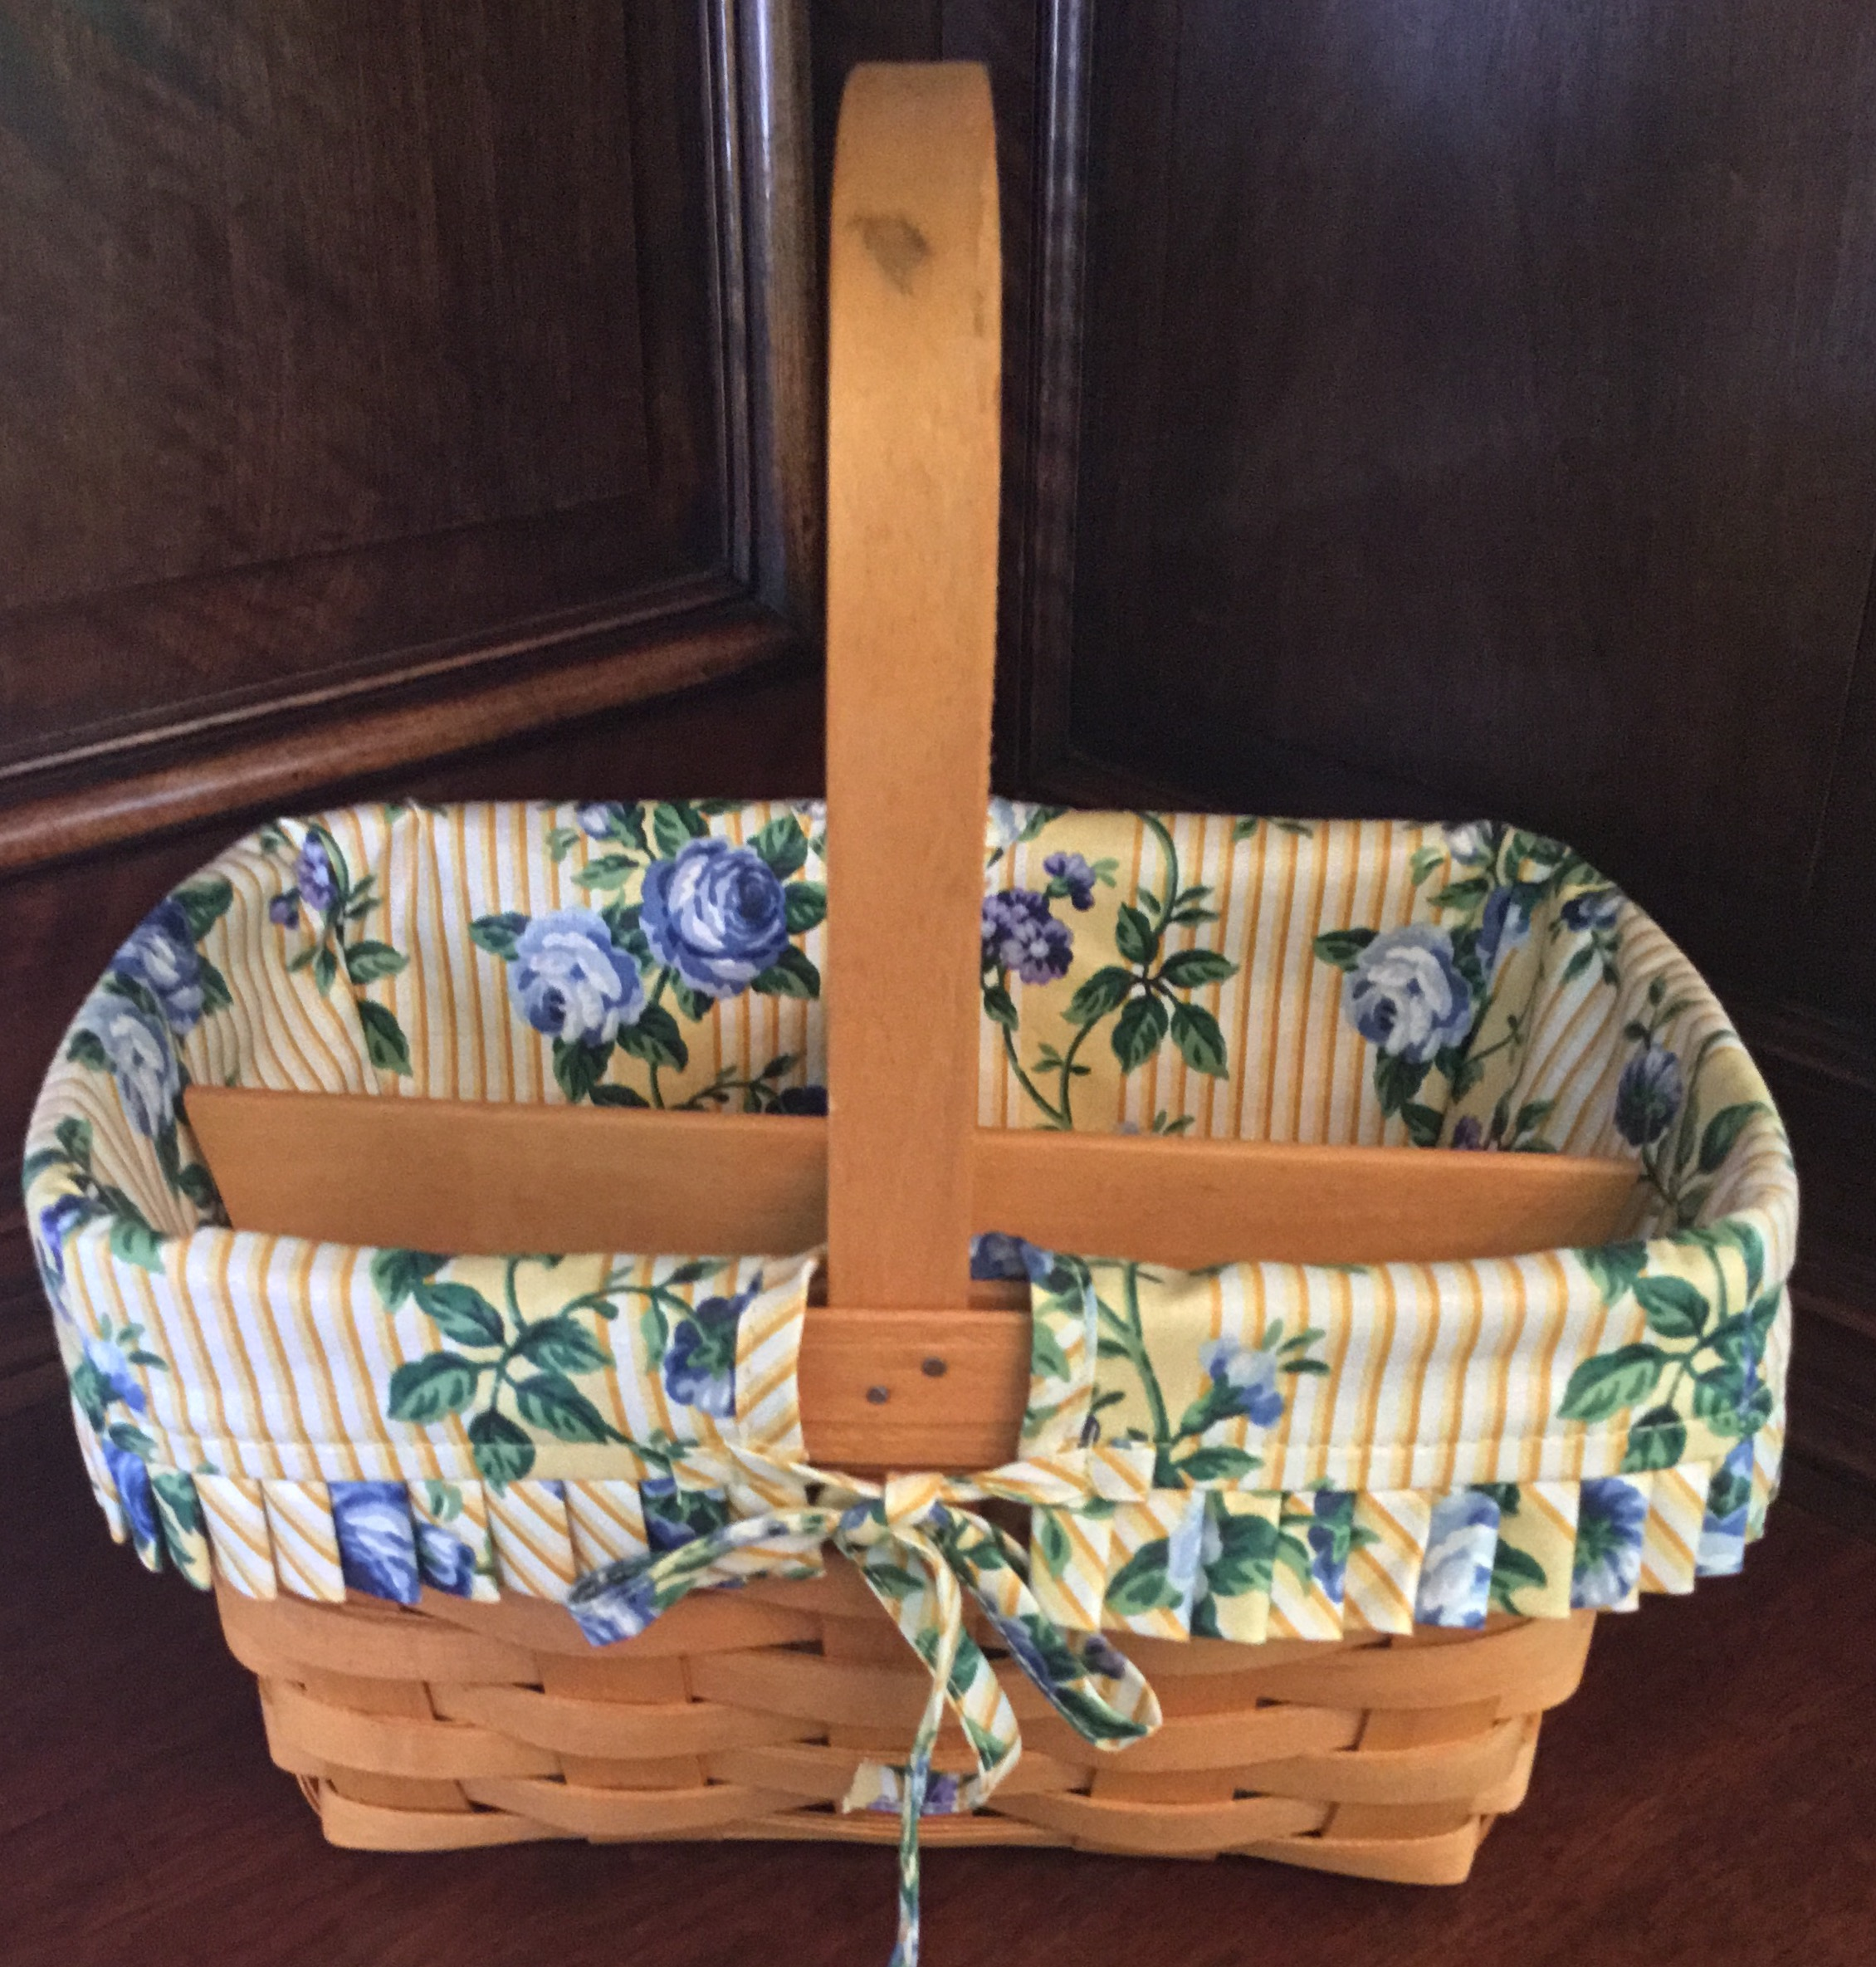 Longaberger Basket with Fabric Liner and Wooden Divider